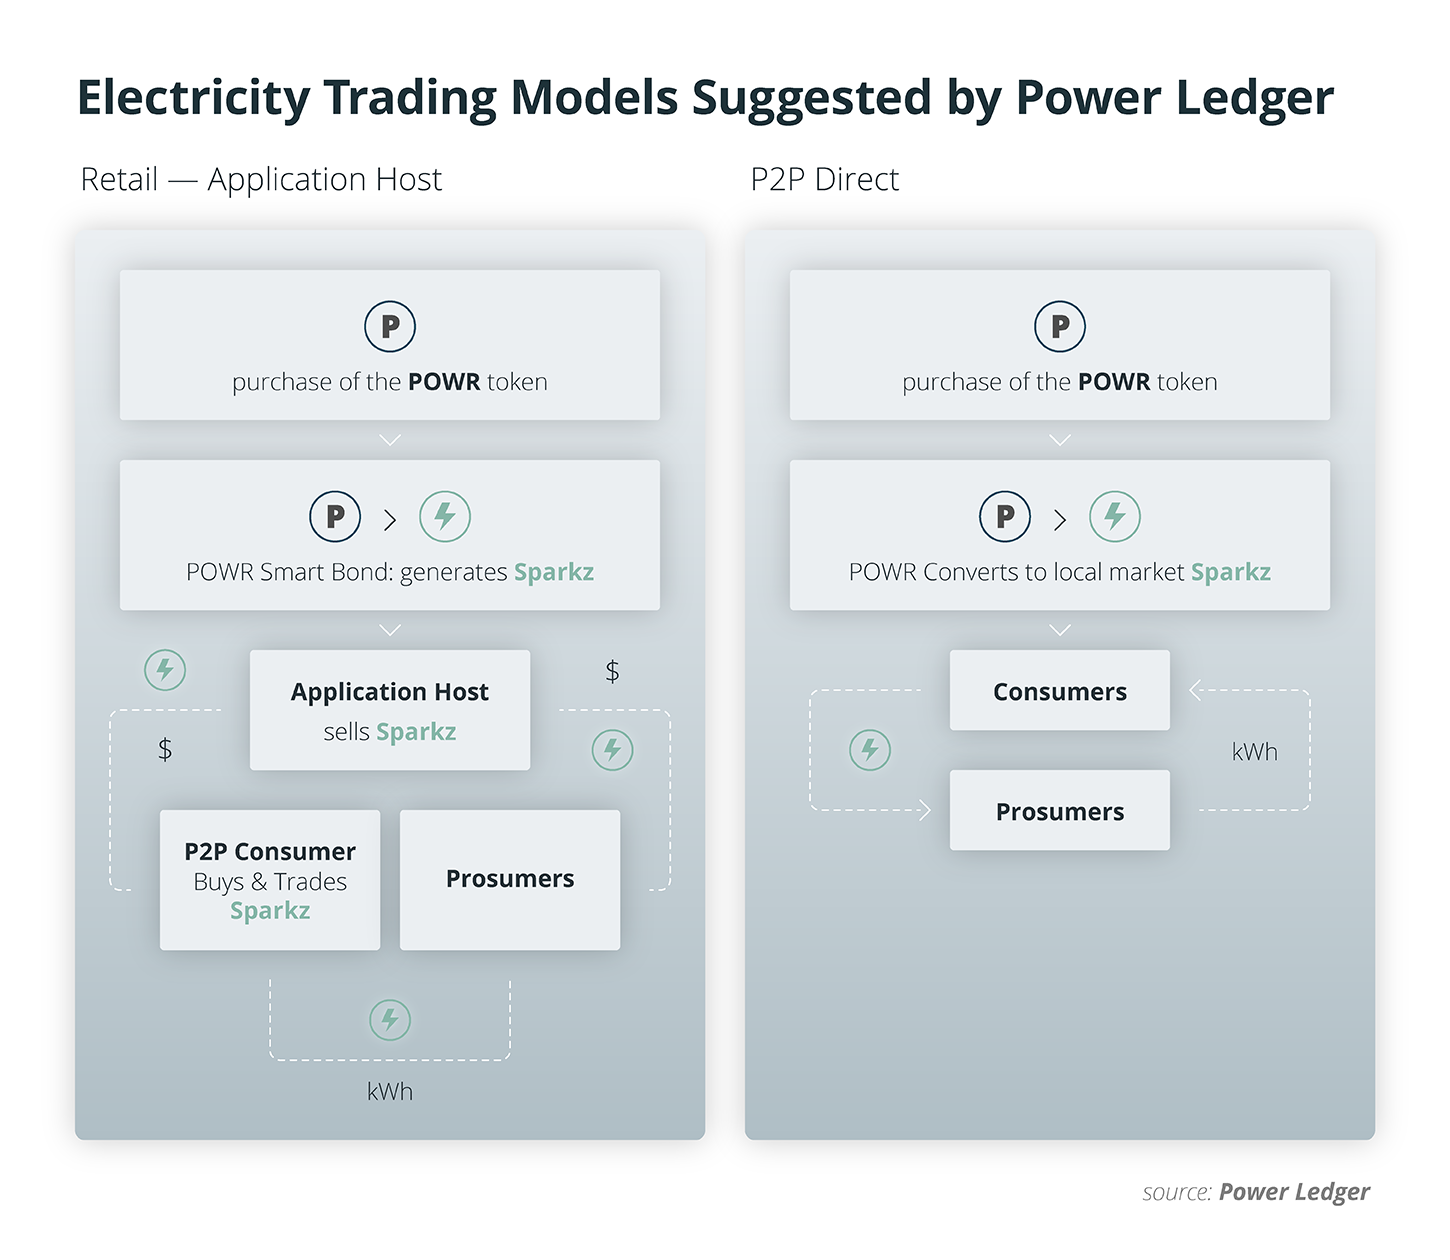 Electricity Trading Models Suggested by Power Ledger